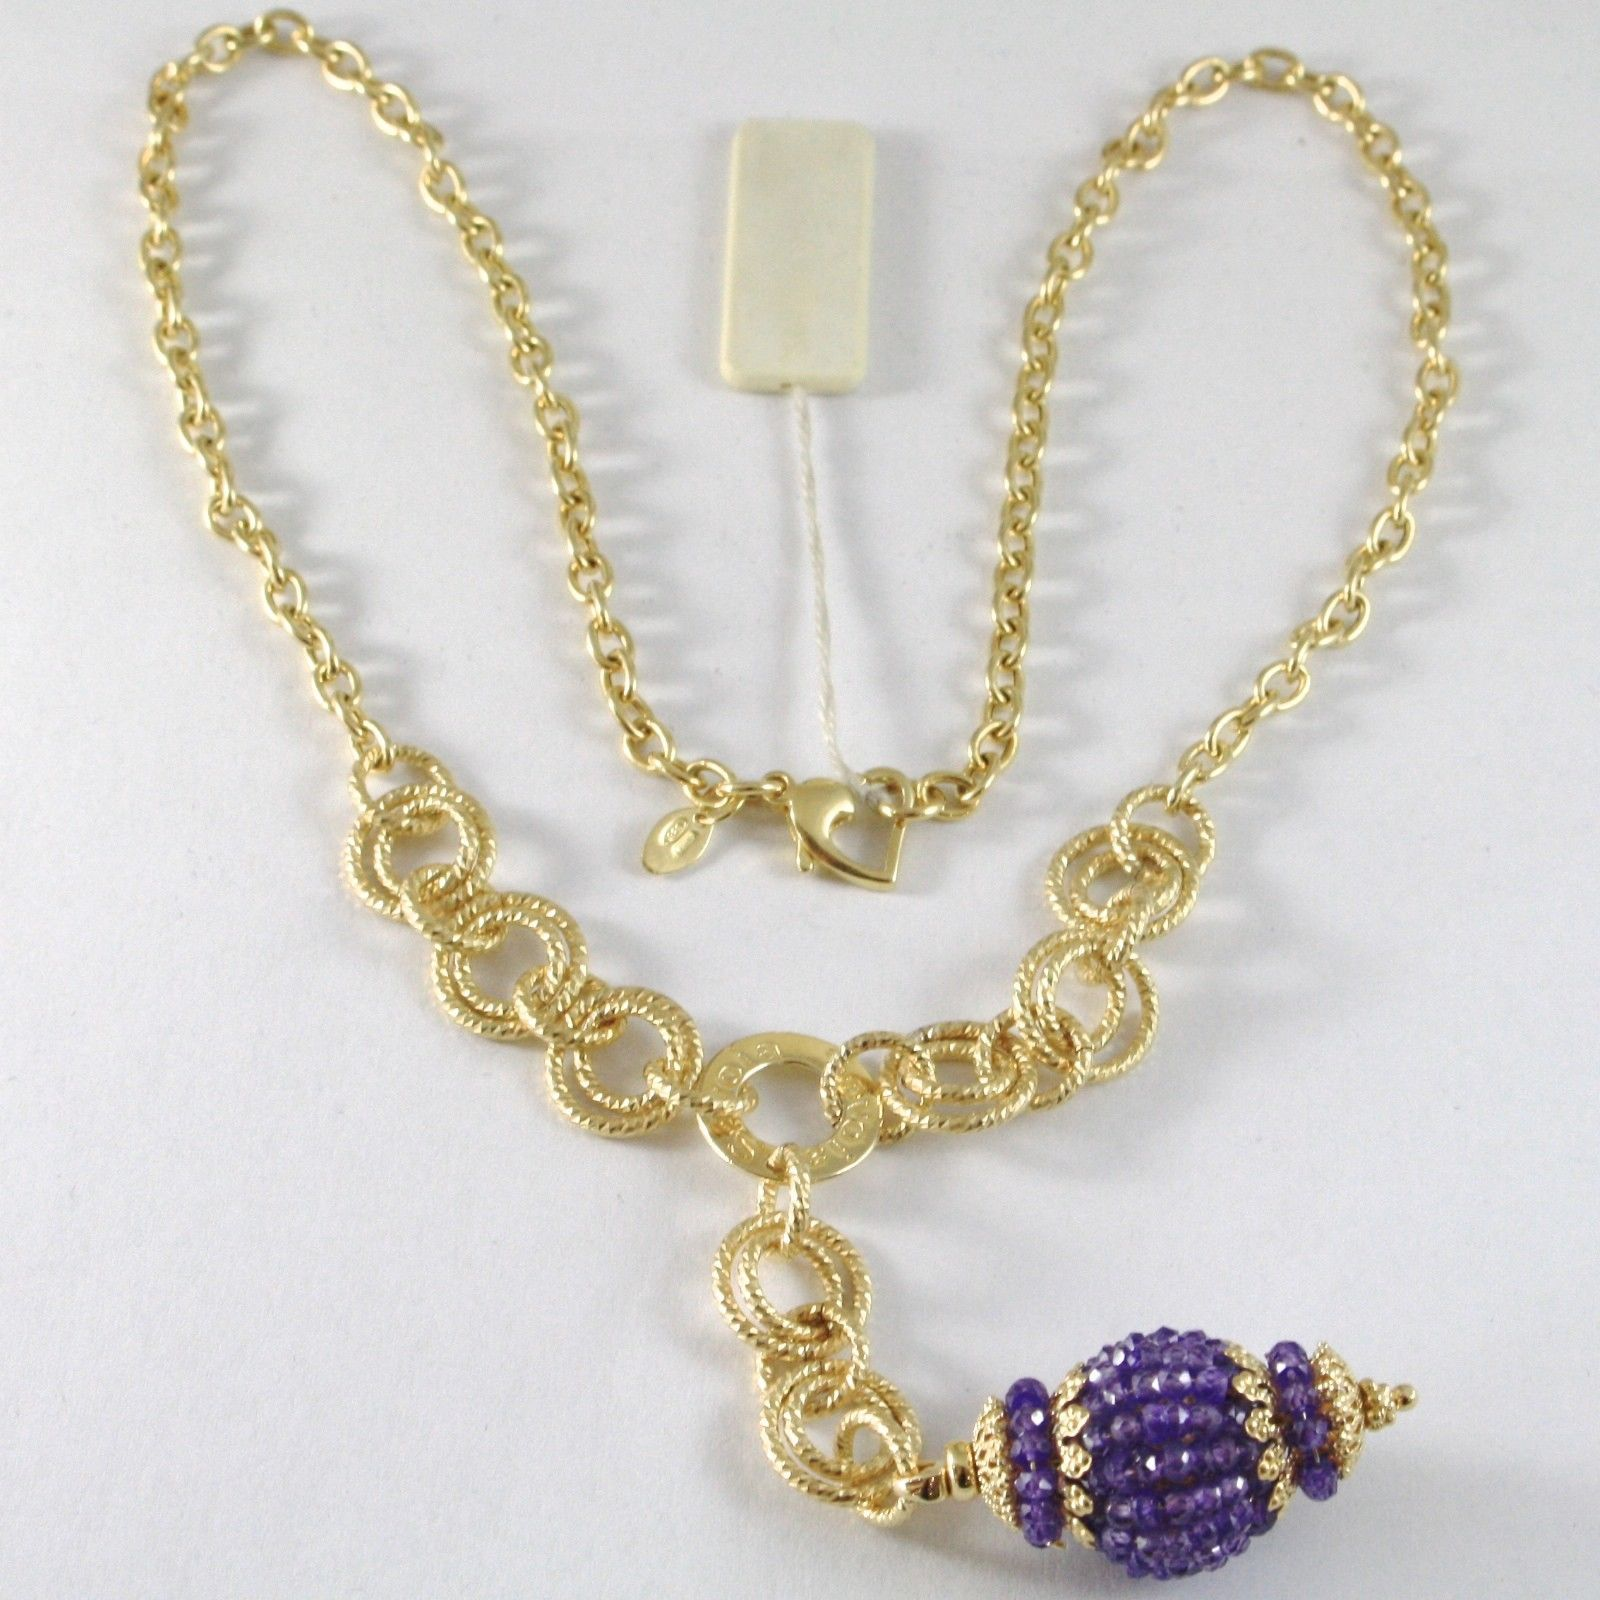 SILVER 925 NECKLACE YELLOW GOLD PLATED WITH HANGING CHARM MILLED AND AMETHYST